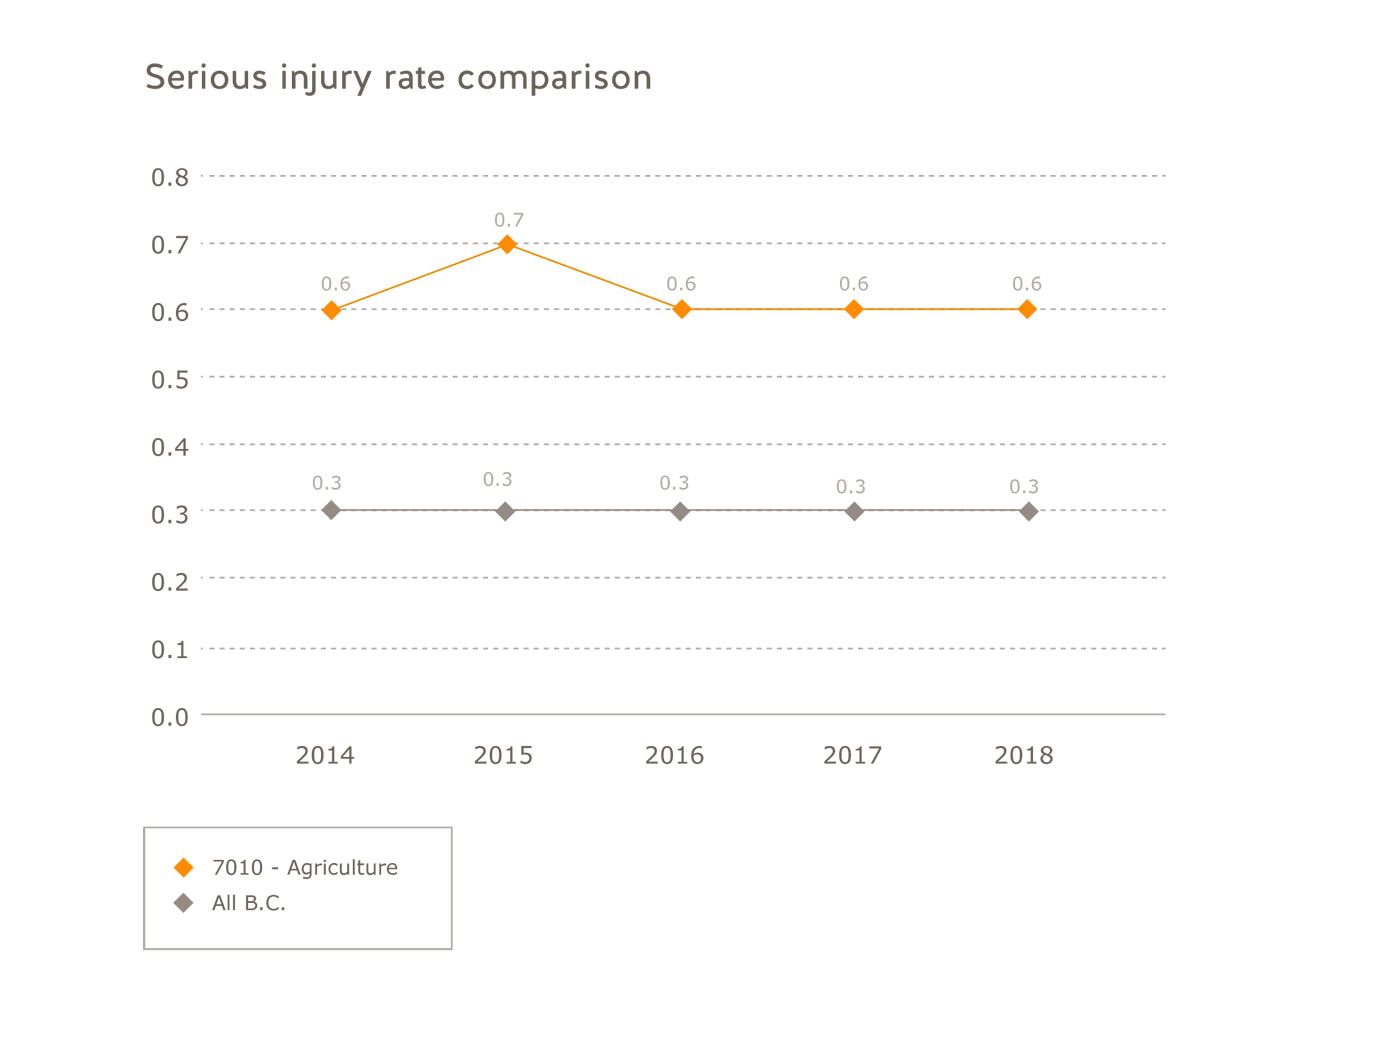 Agriculture serious injury rate comparison for the years 2014 to 2018. All B.C.=2014=0.3; 2015=0.3; 2016=0.3; 2017=0.3; 2018=0.3. Agriculture=2014=0.6; 2015=0.7; 2016=0.6; 2017=0.6; 2017=0.6.